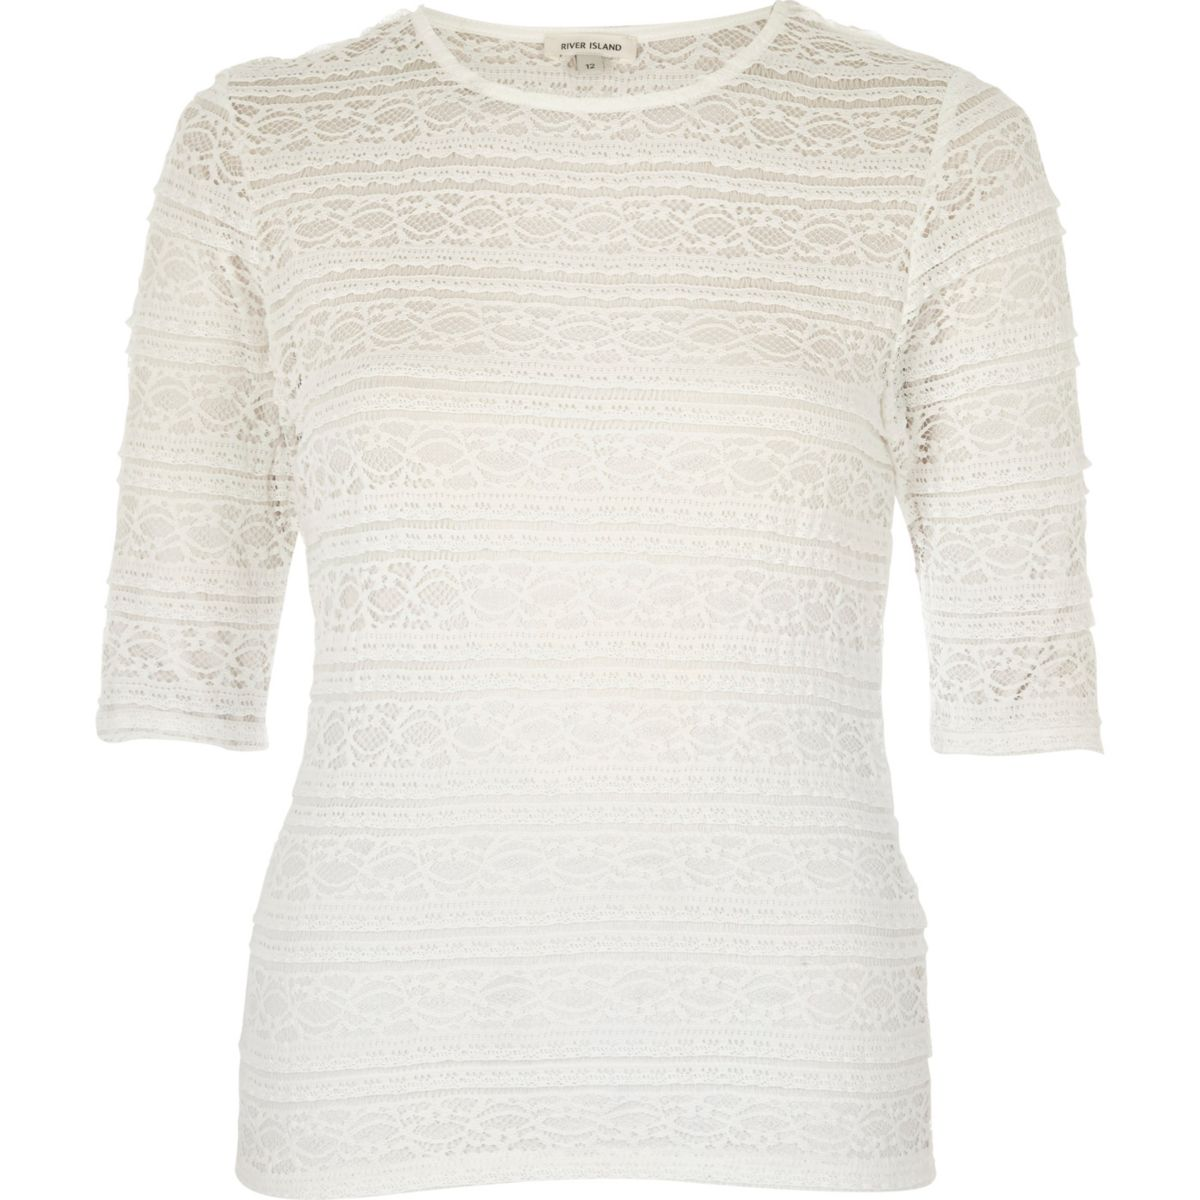 White sheer lace fitted top